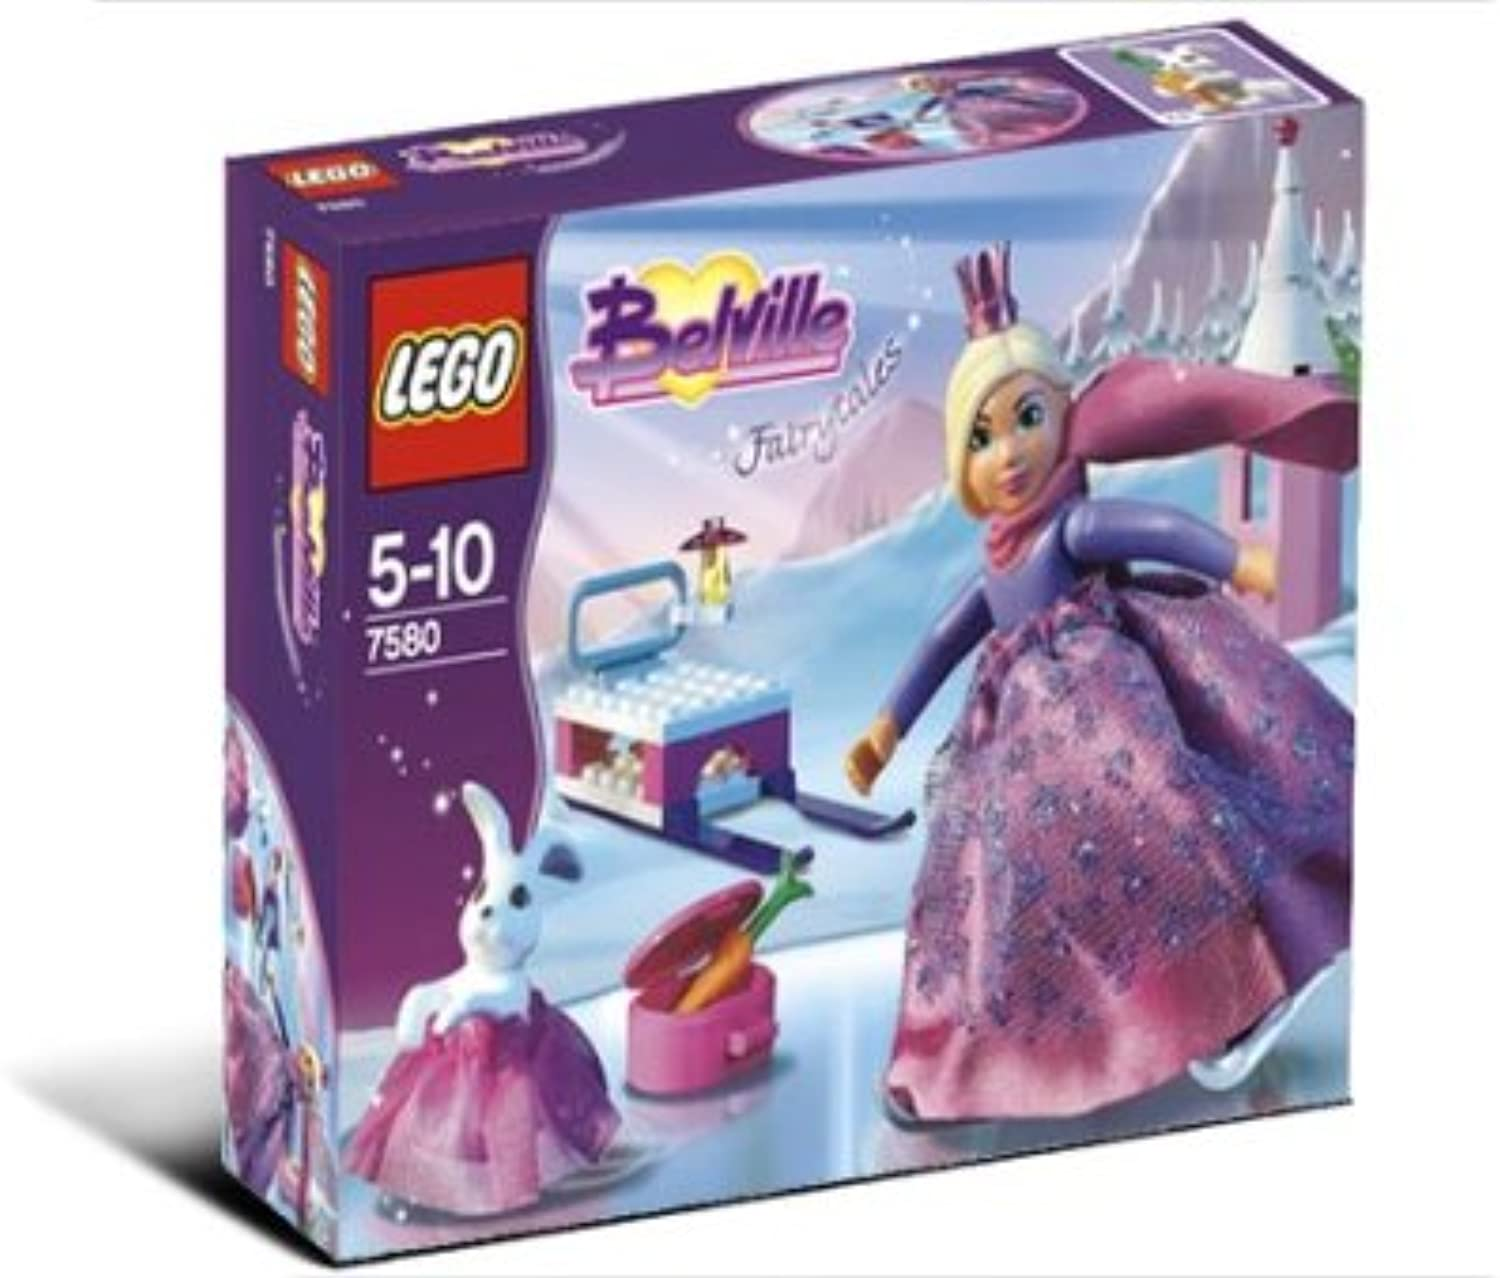 LEGO Belville 7580 The Skating Princess